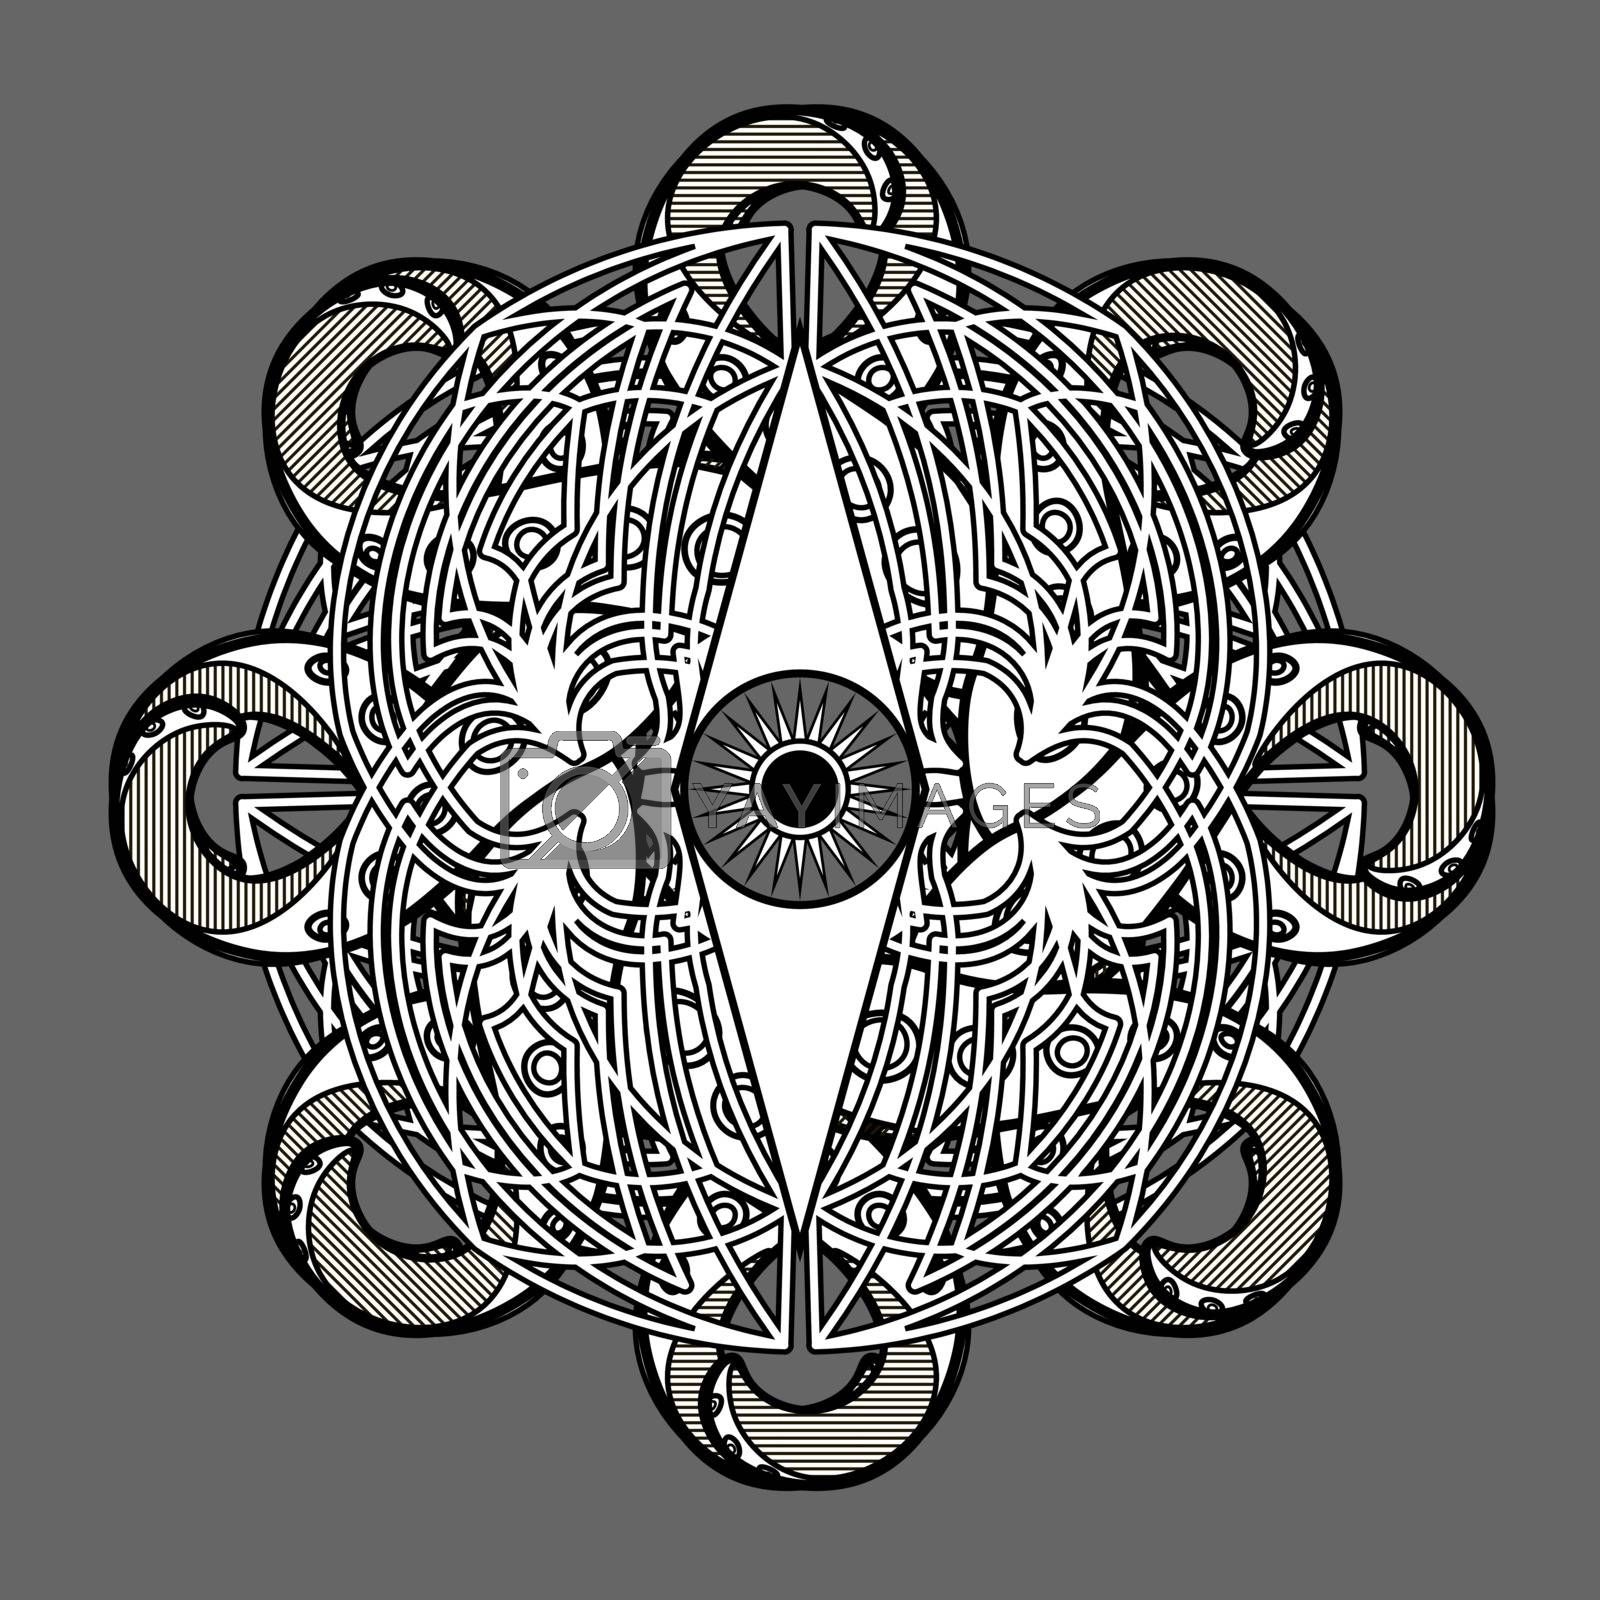 and crossed tentacles on grey background